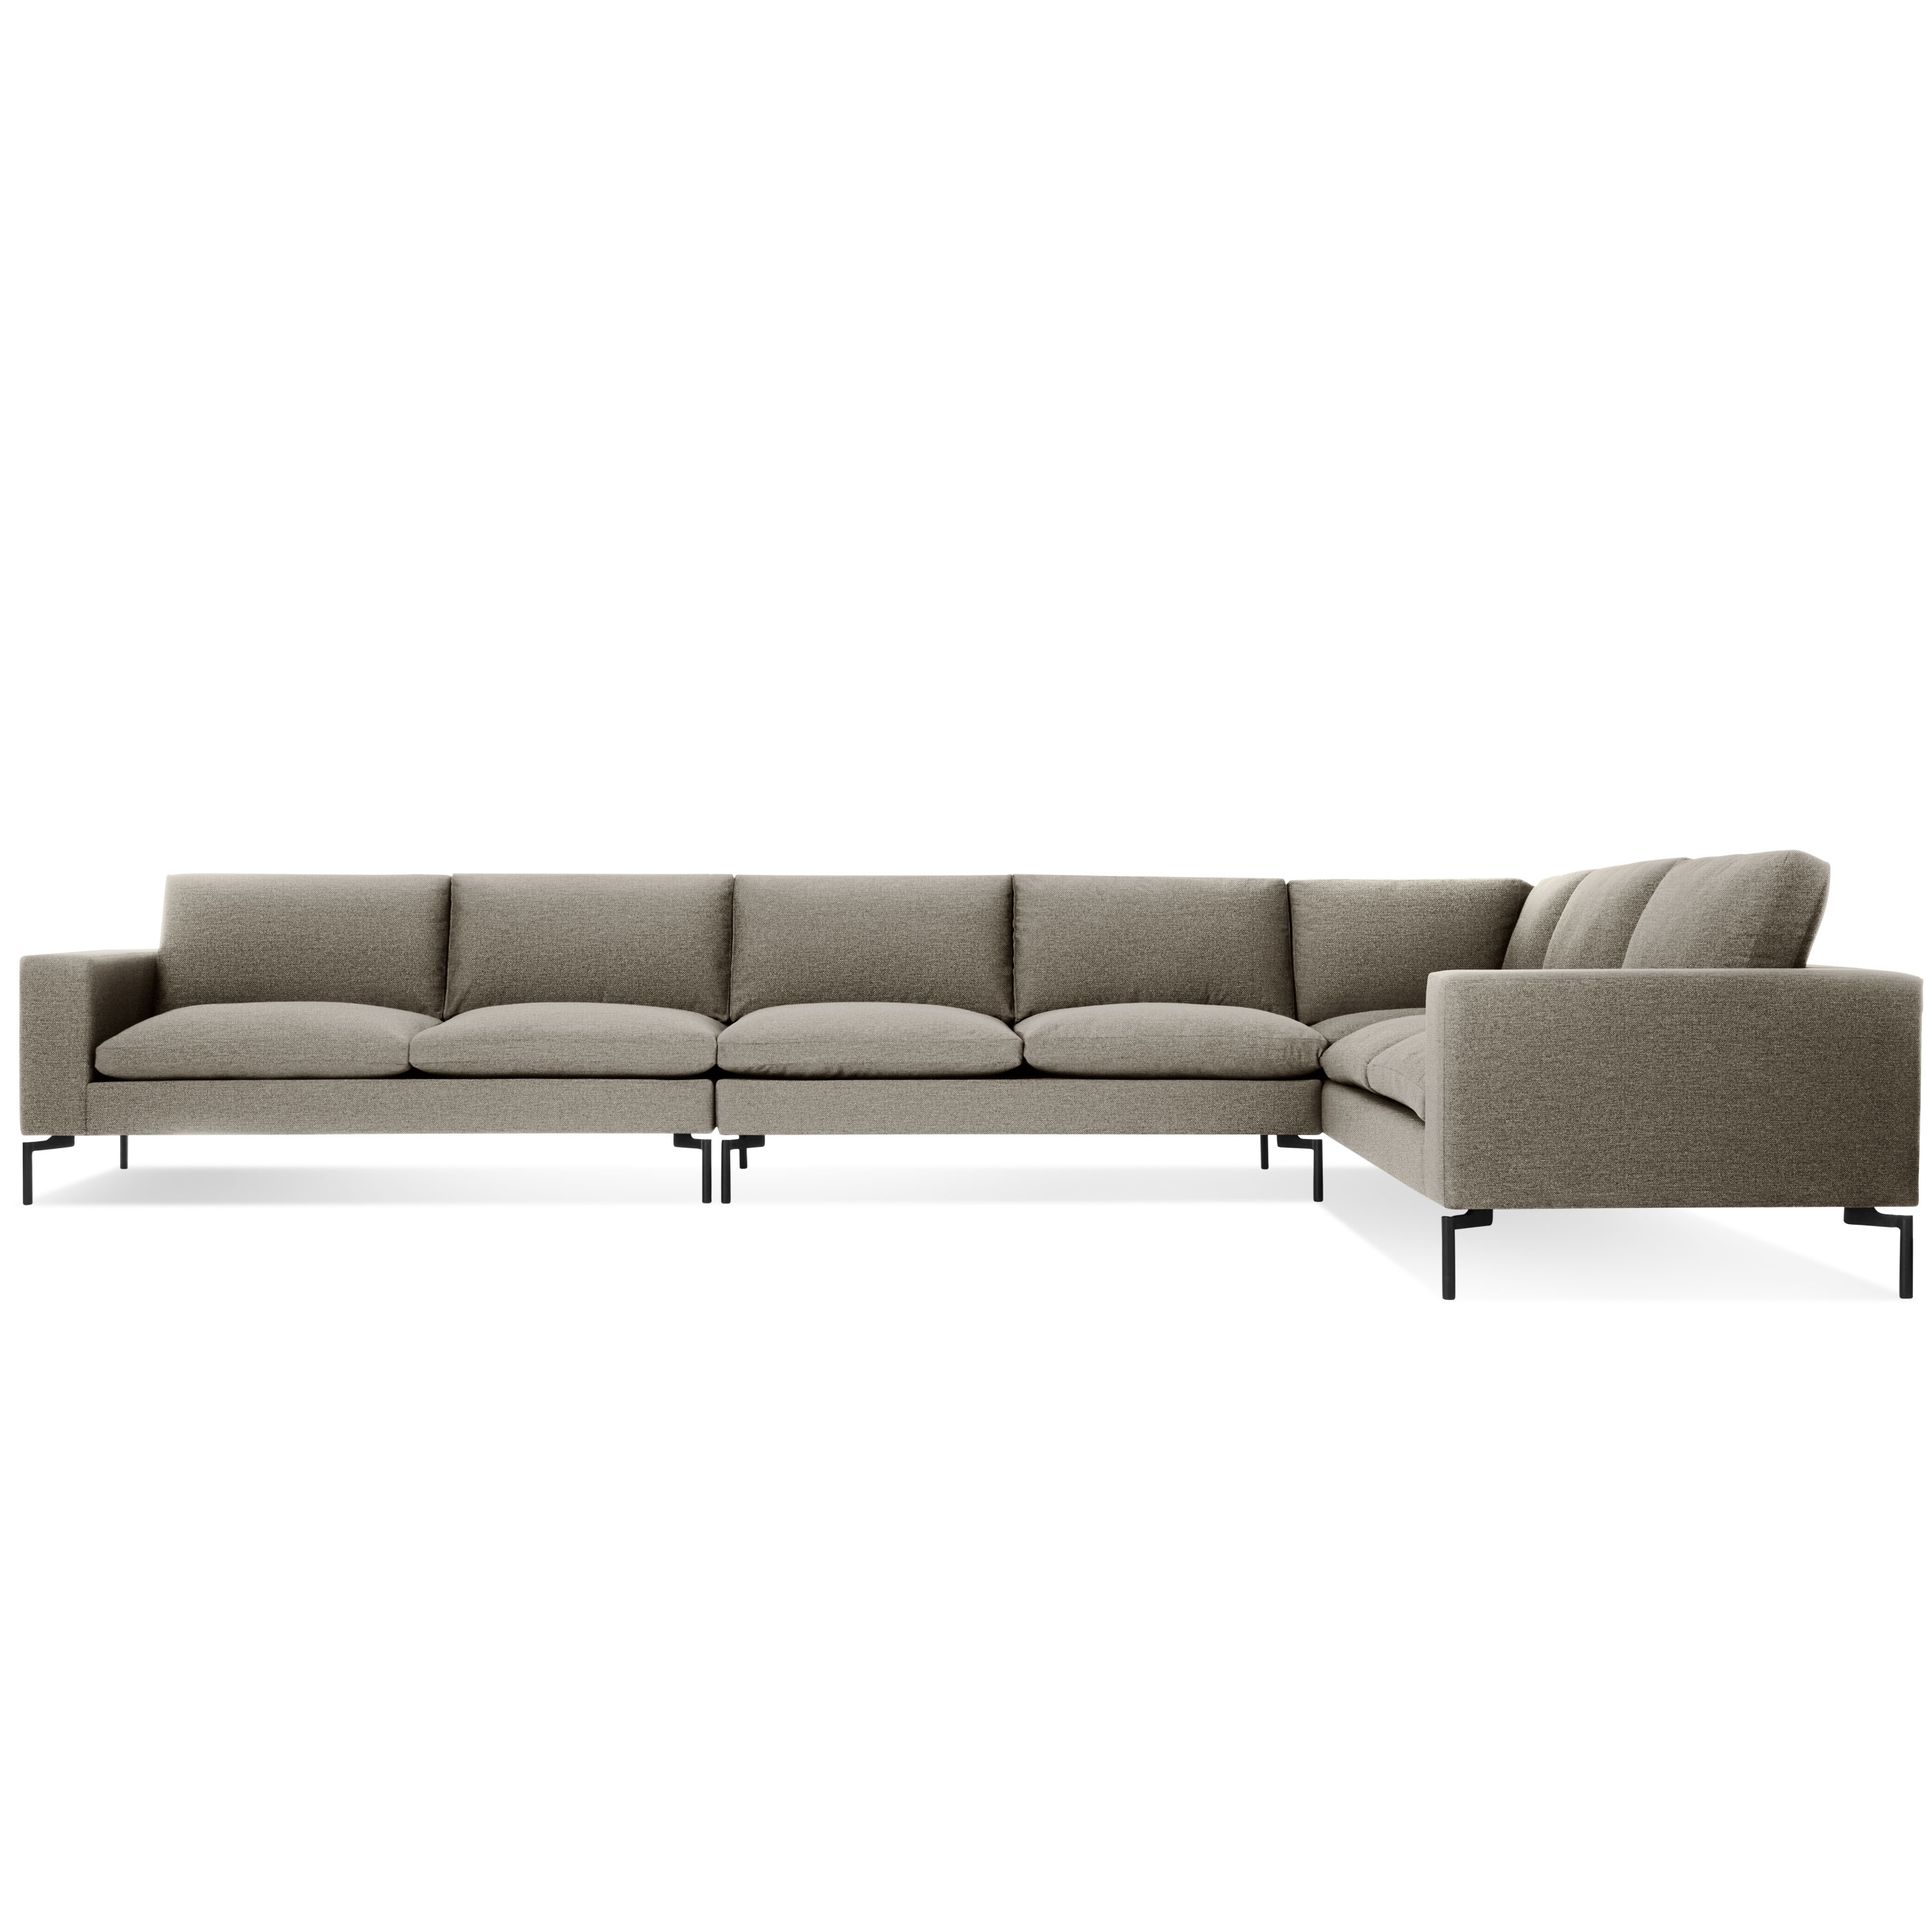 Newfoundland Sectional Sofas Intended For Most Recent New Standard Large Sectional Sofa – Large Sofas (View 4 of 15)